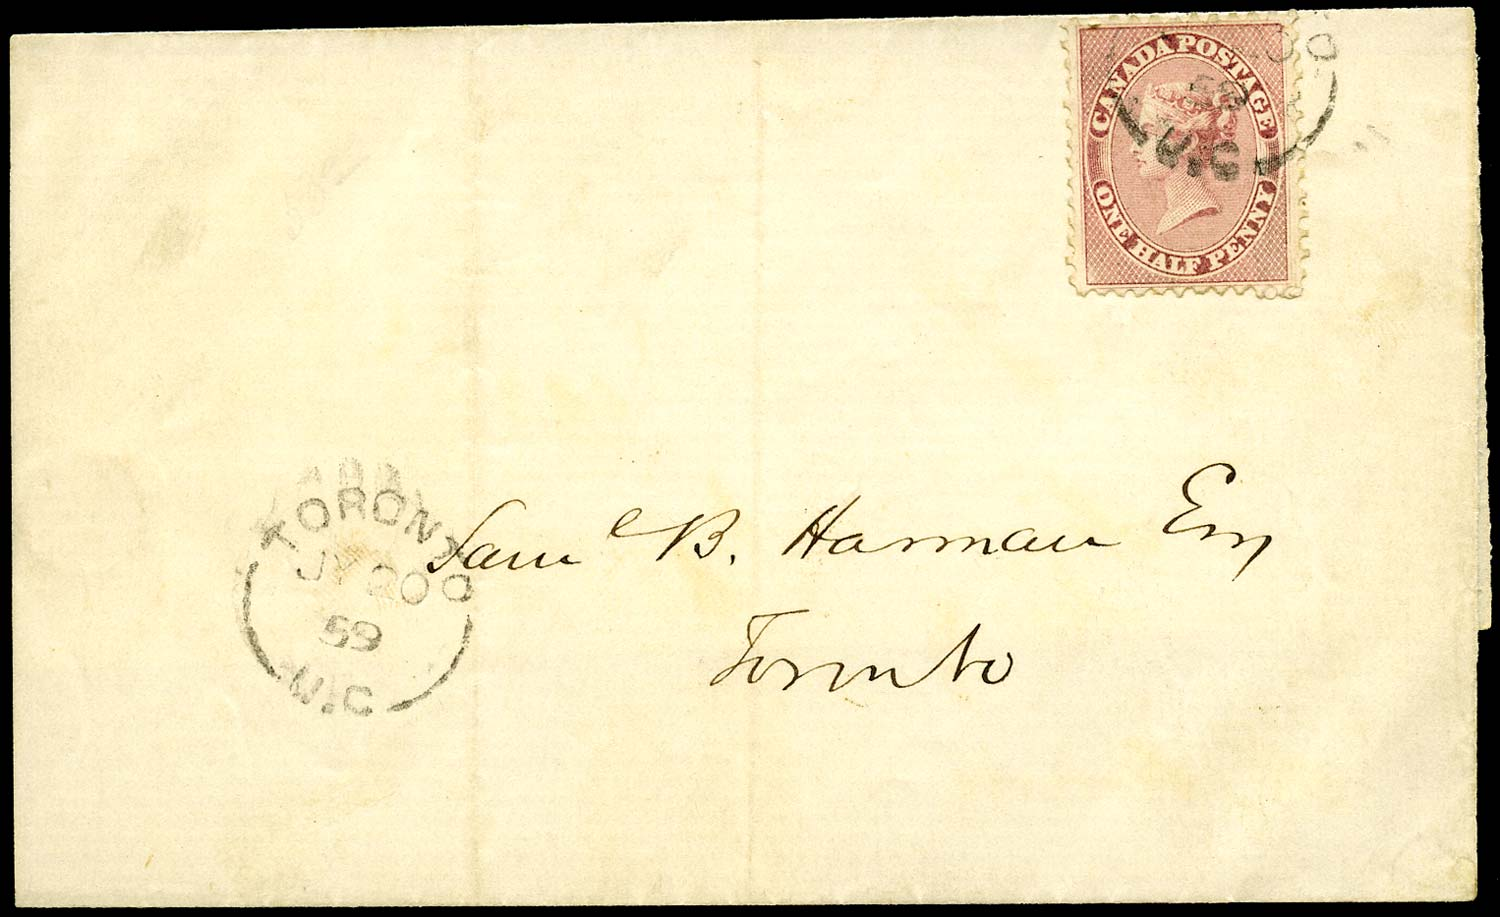 CANADA 1859  SG25 Cover from Toronto with perforated ½d deep rose